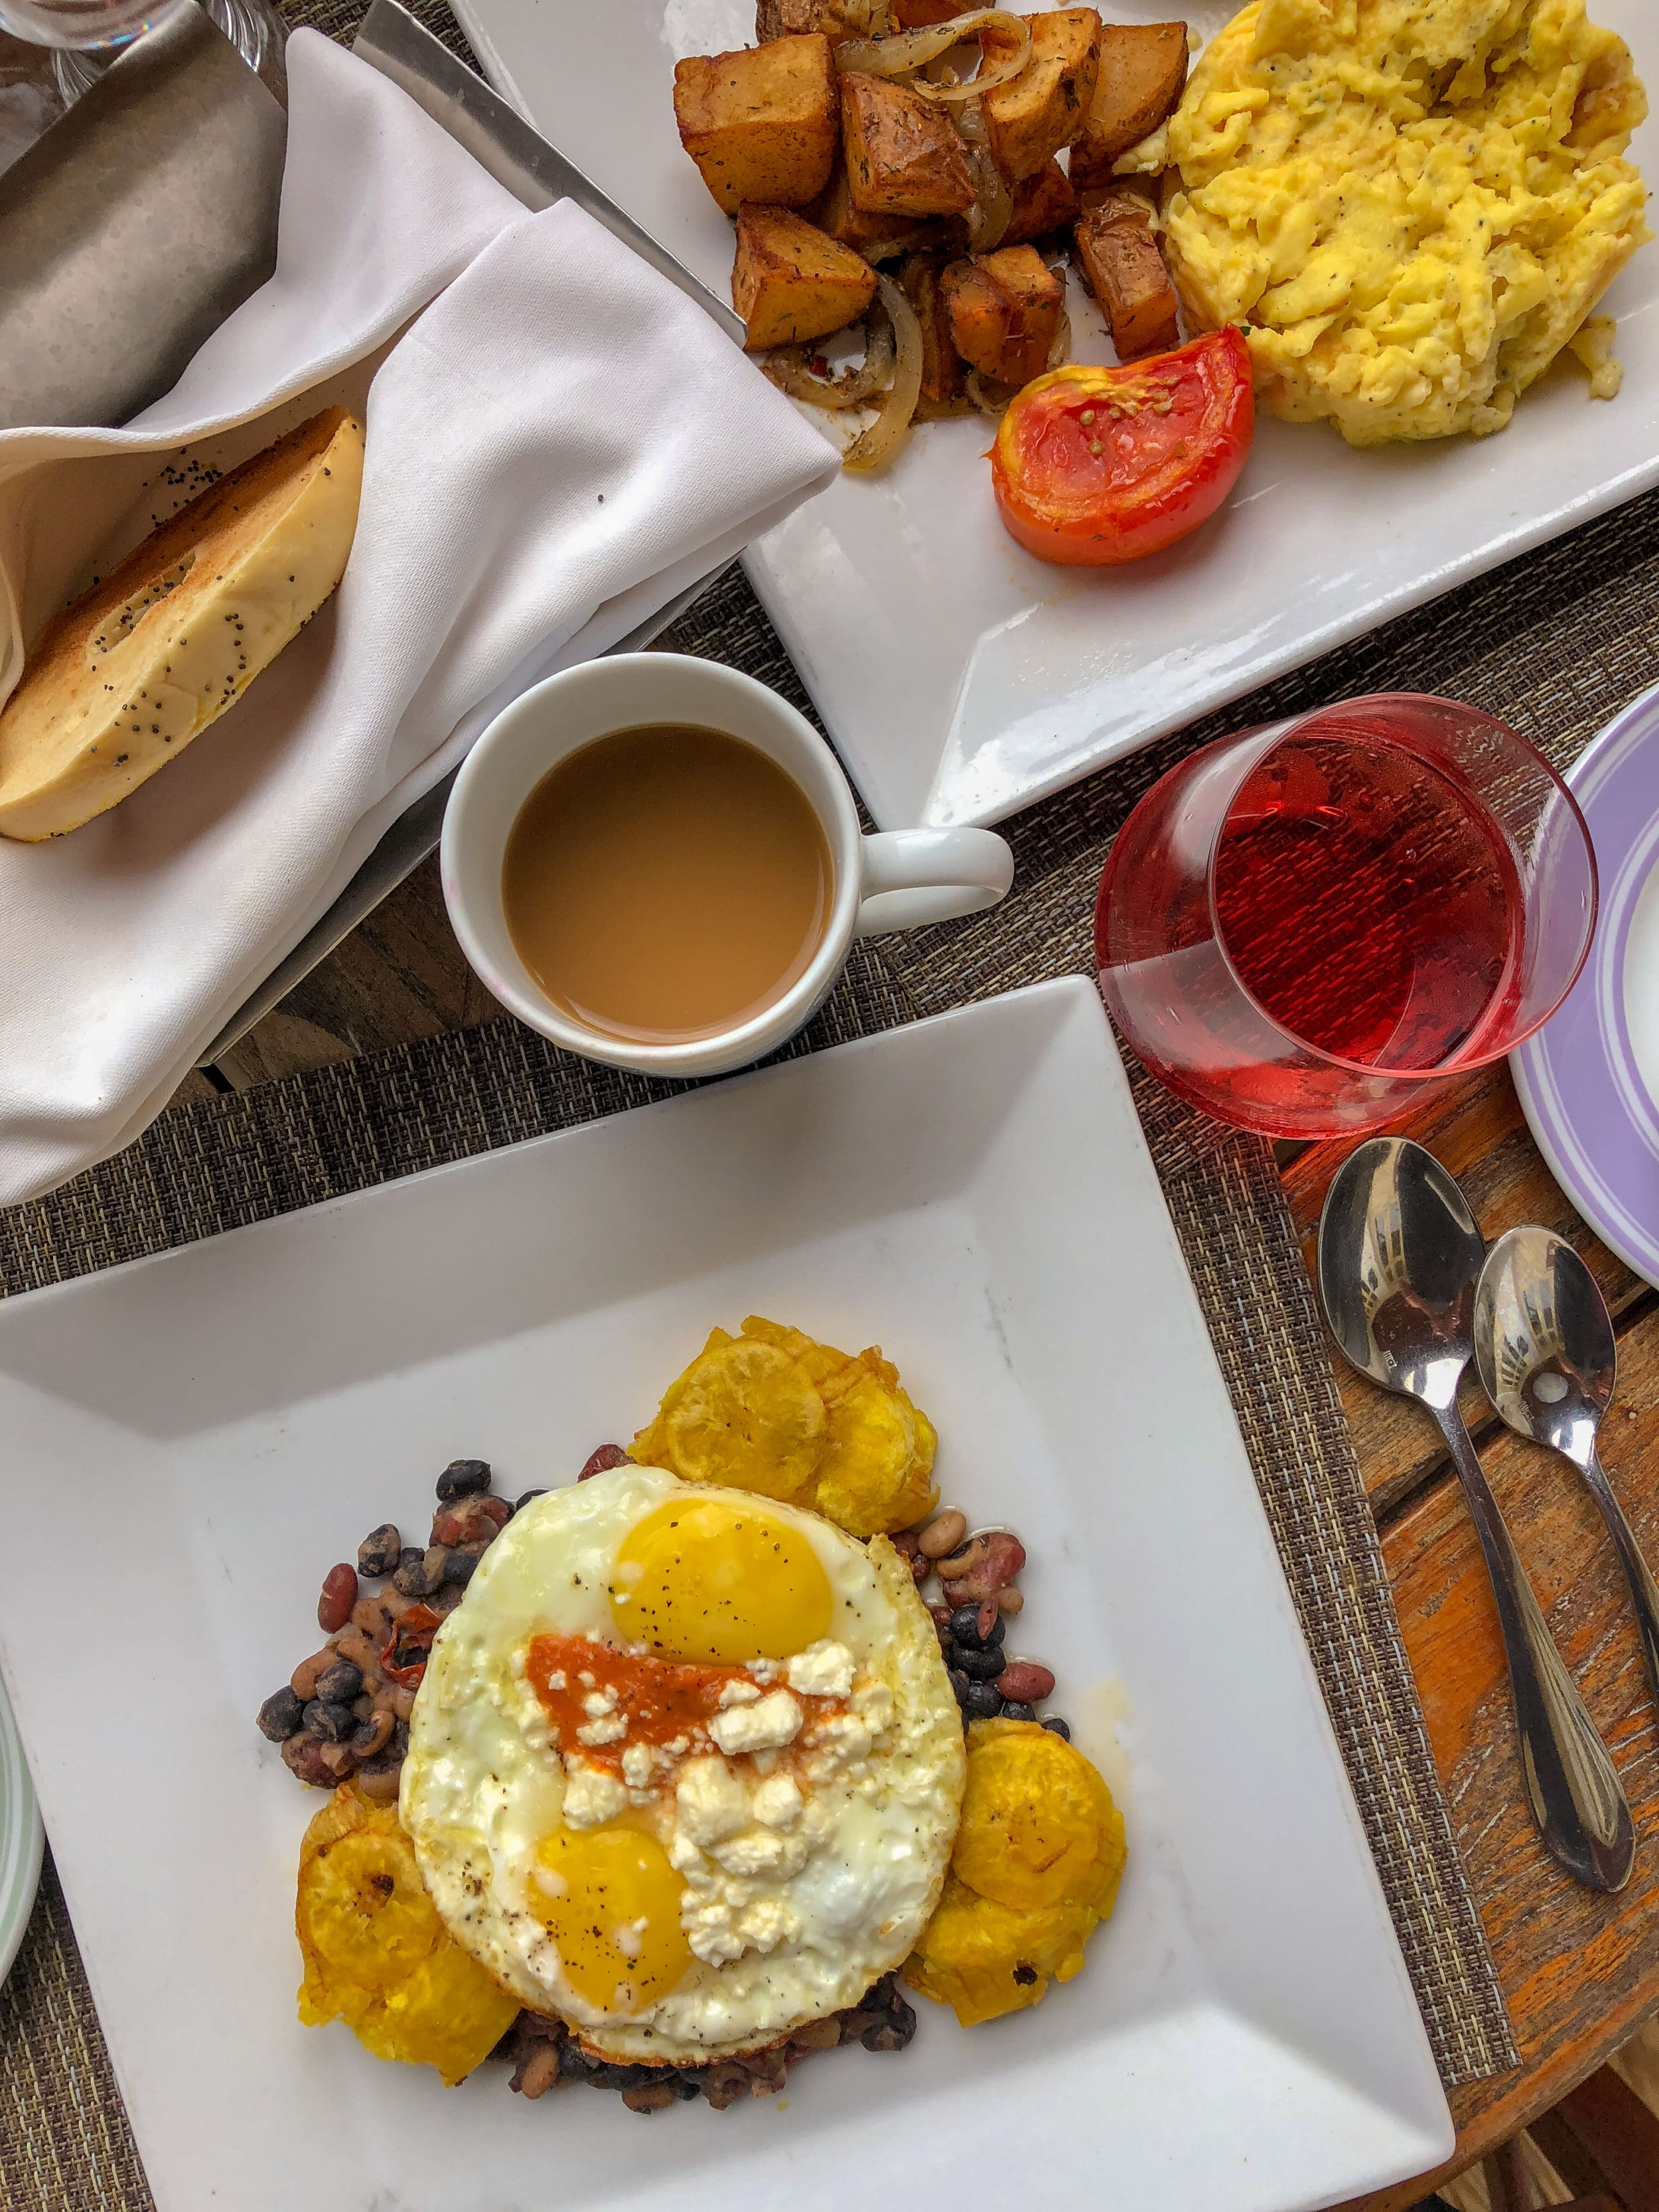 San Juan Sunrise (fried Plantain, Beans, Queso Fresco, Sunny Side up Eggs) at Four Seasons Nevis